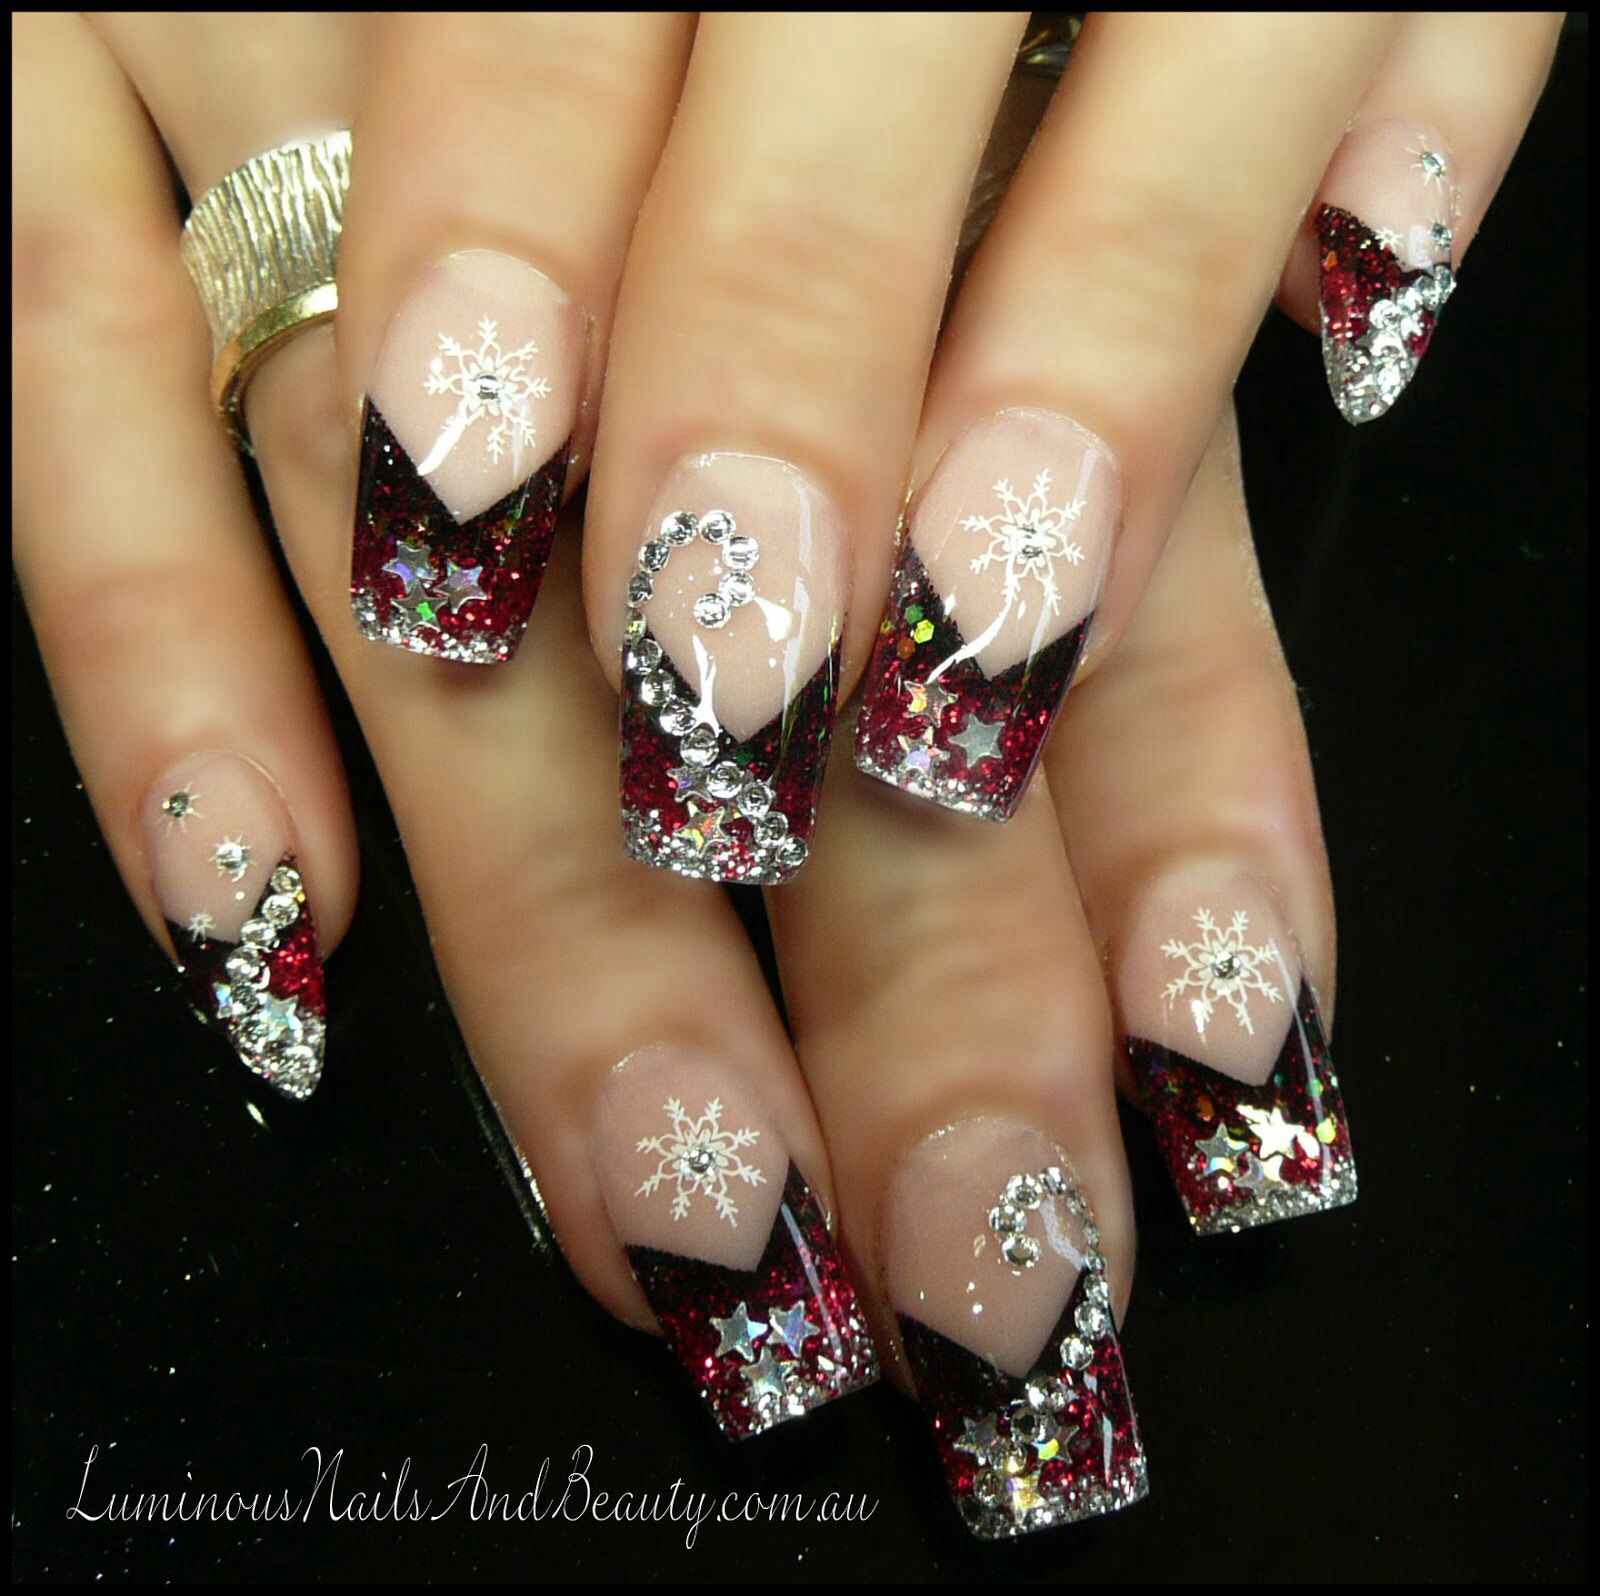 Christmas Nails On Black Hands: Pin By Tammy Hammer On Nails